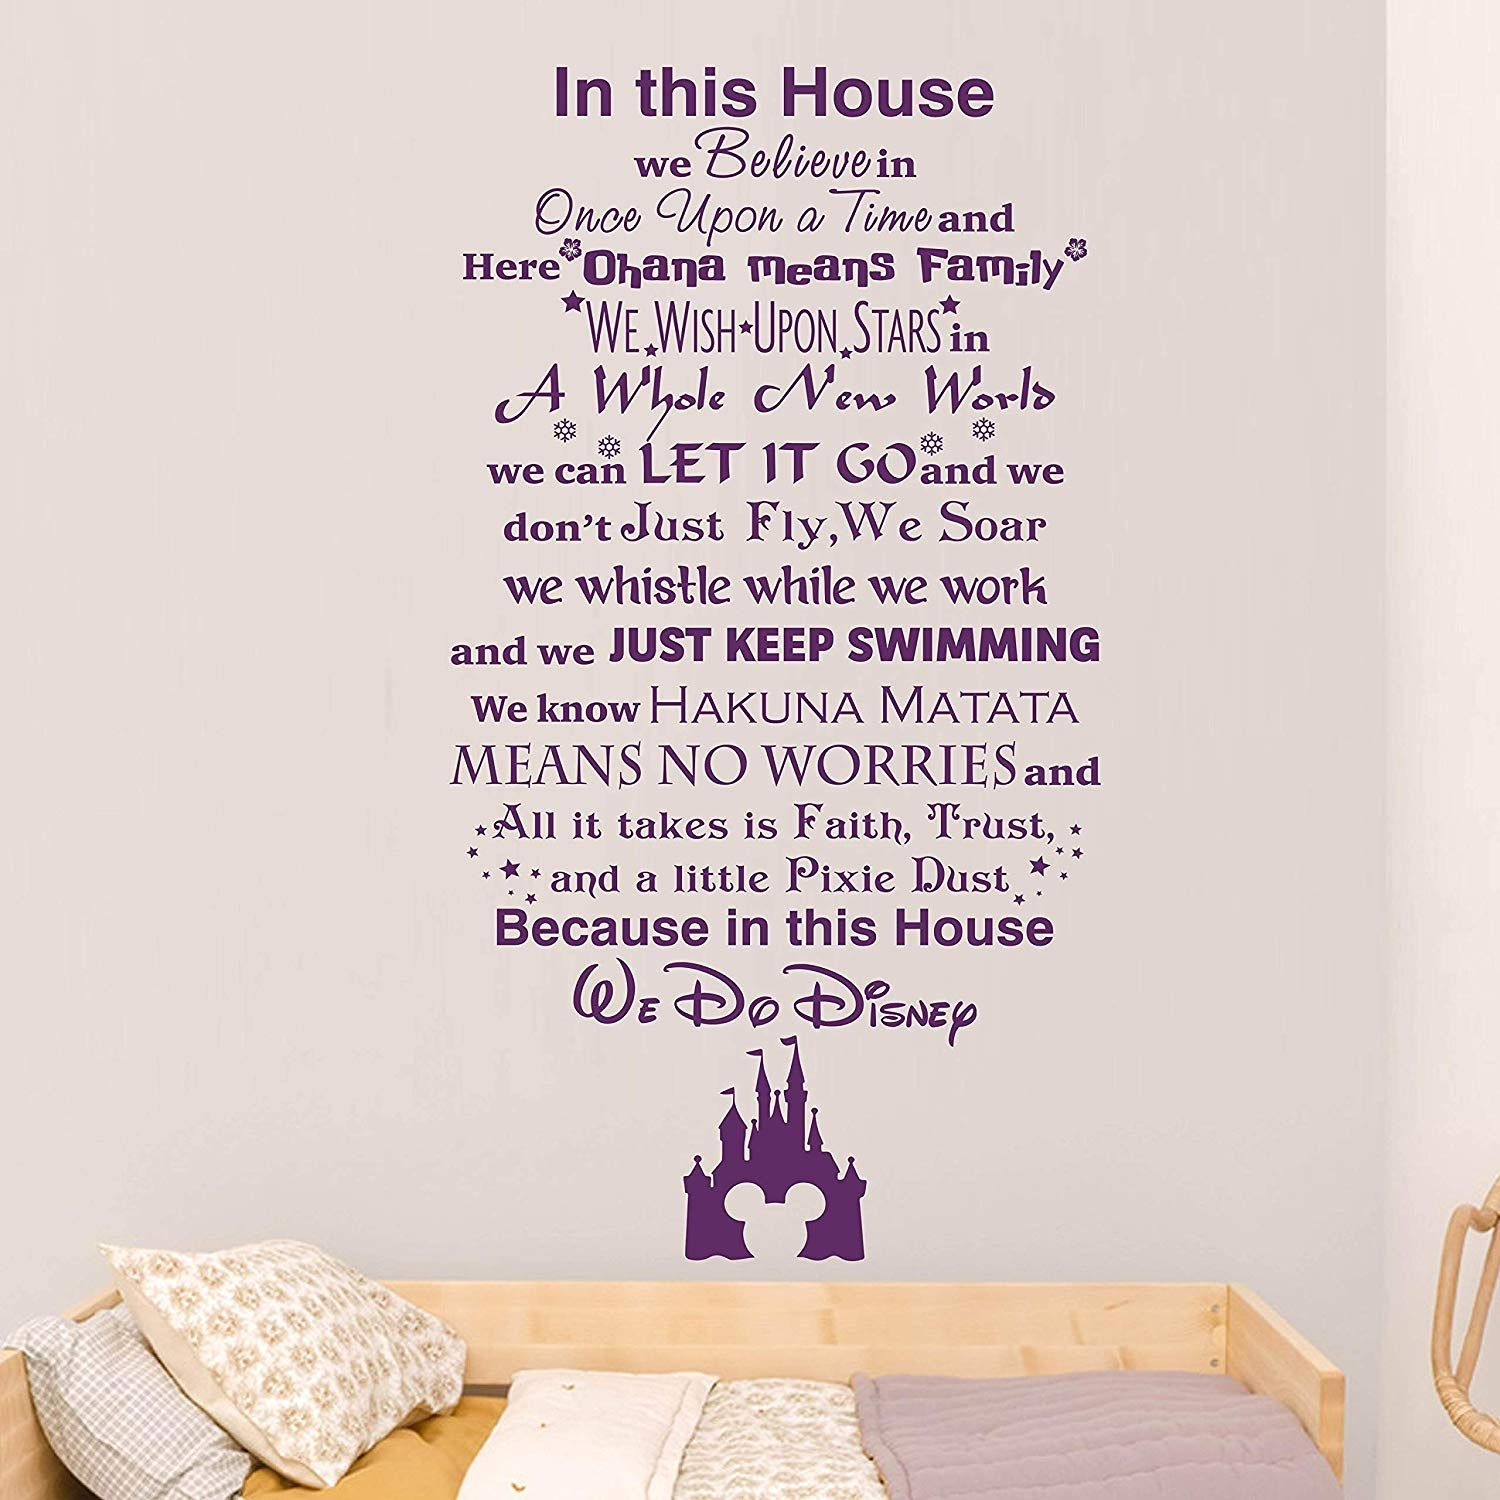 Wall Decals In This House We Do Disney Wall Decal Quote Lettering Vinyl Sticker Home Room Disney Quotes Disney Wall Decals Wall Quotes Decals Wall Art Quotes